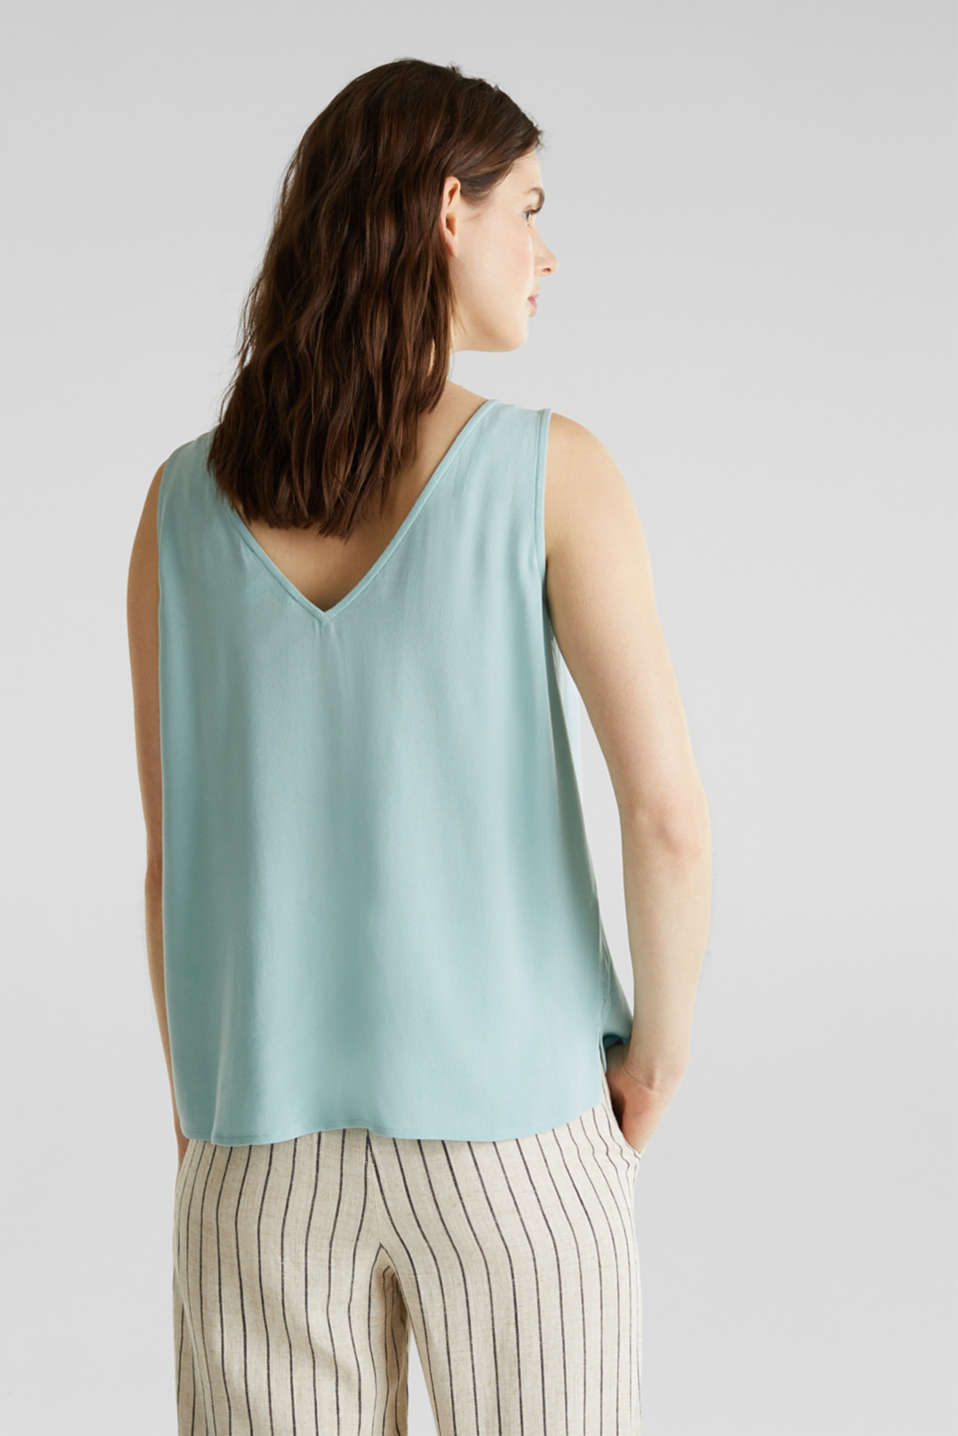 Crêpe blouse top with a button placket, LIGHT AQUA GREEN, detail image number 3